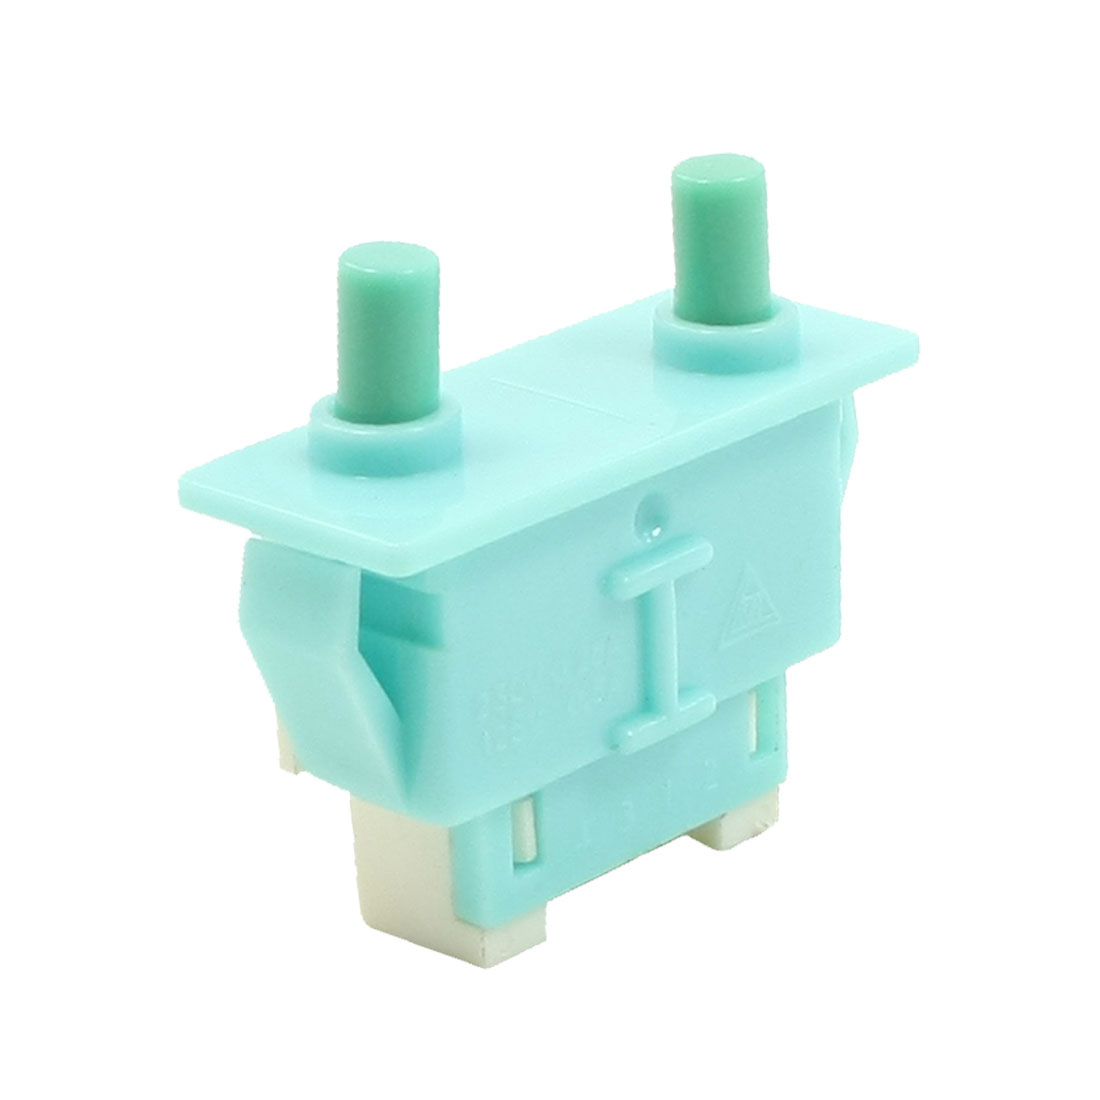 250V 0.25A 125V 0.5A SPST Double Button Momentary Action Door Light Switch